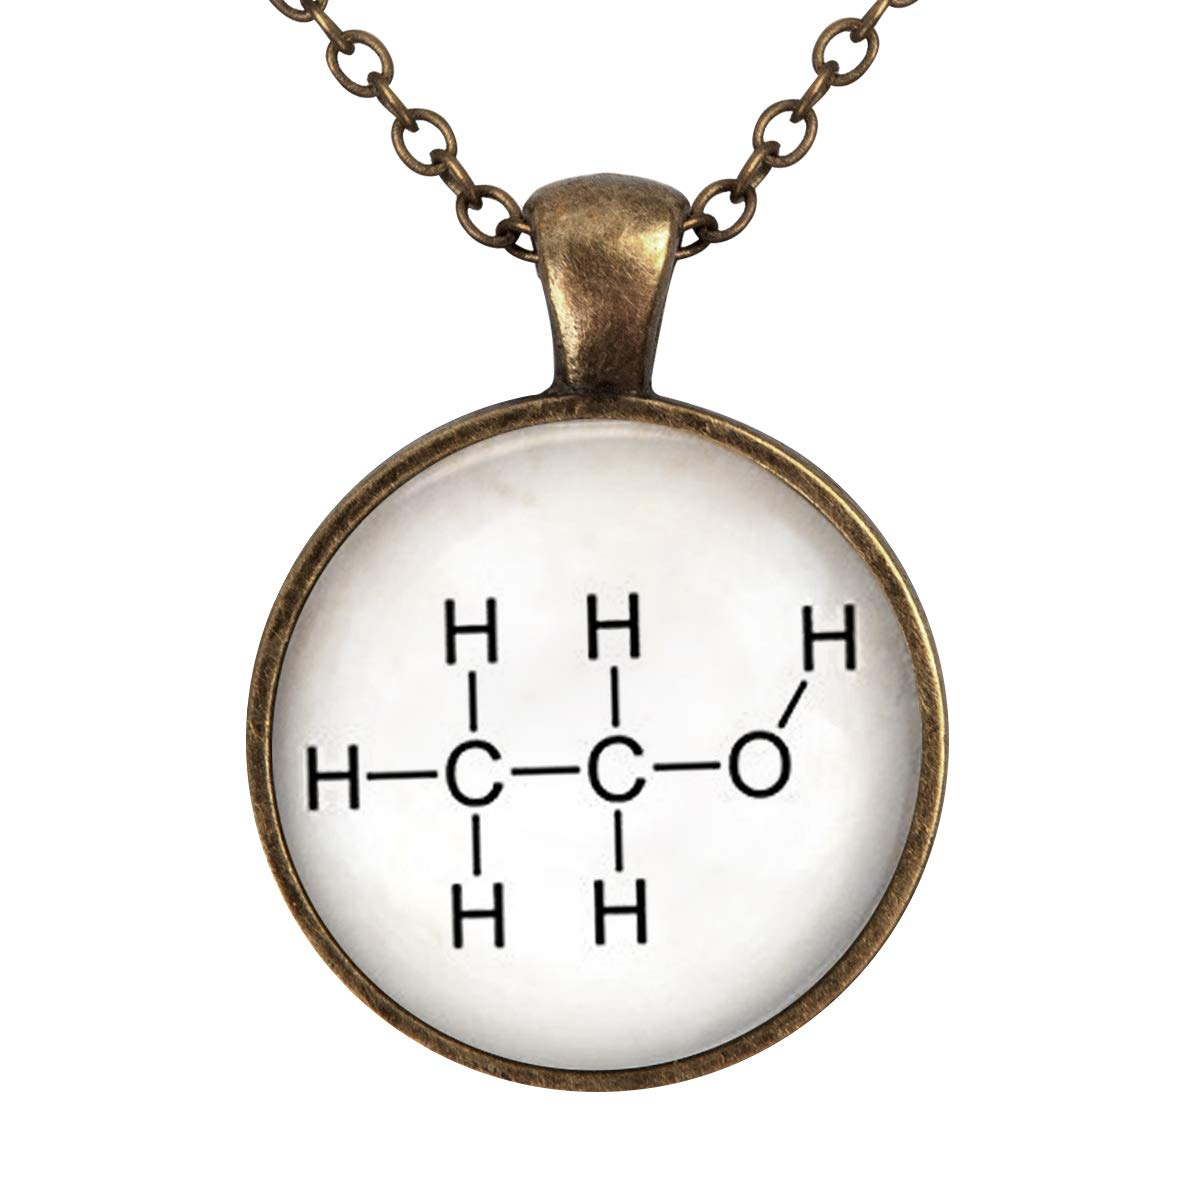 Family Decor Chemical Ethanol Molecules Pendant Necklace Cabochon Glass Vintage Bronze Chain Necklace Jewelry Handmade